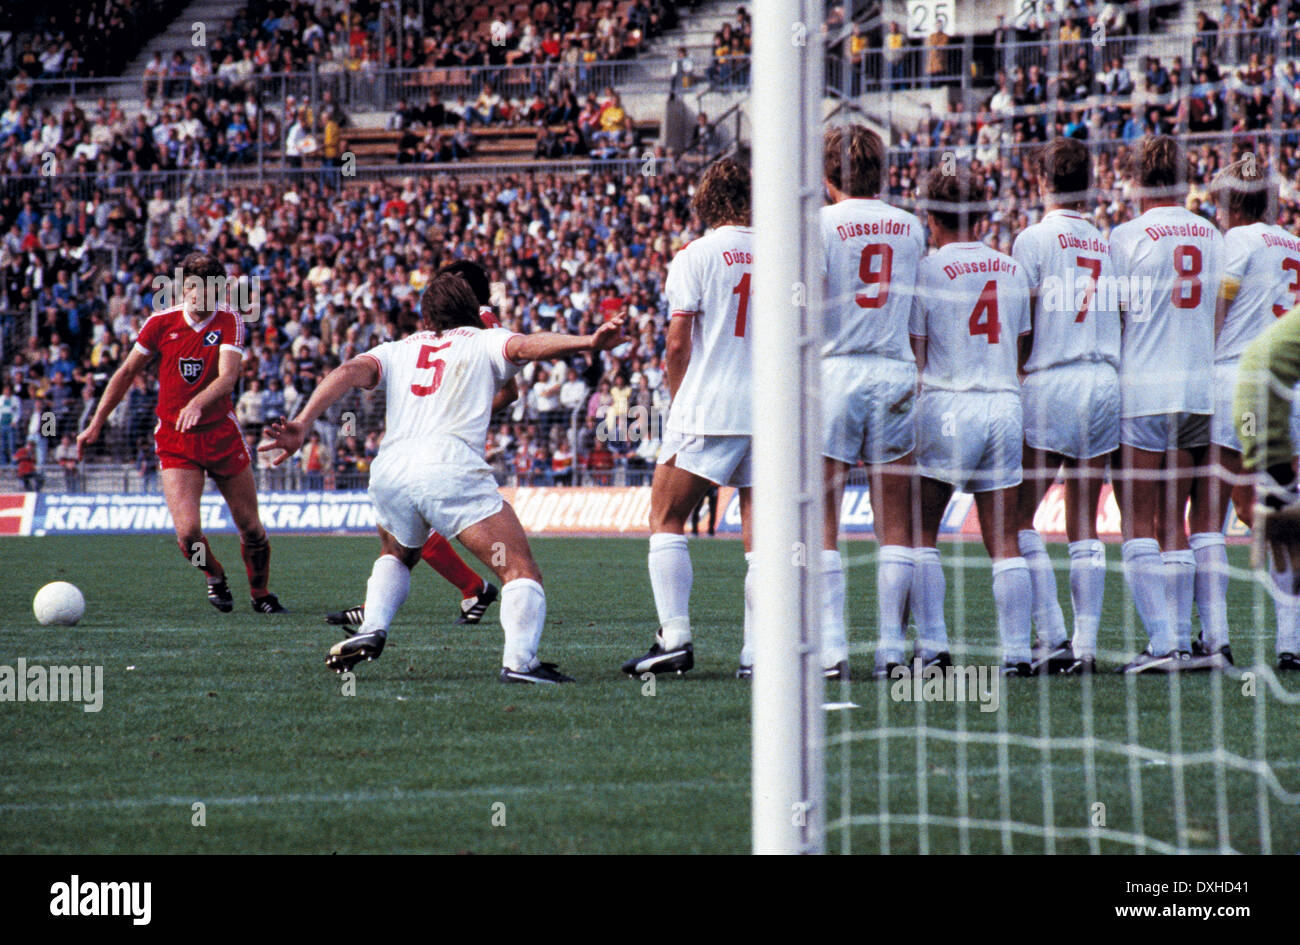 football, Bundesliga, 1983/1984, Rhine Stadium, Fortuna Duesseldorf versus Hamburger SV 2:3, scene of the match, Dieter Schatzschneider (HSV) left scores the 2:3 winning goal by free kick against the Fortuna players wall - Stock Image